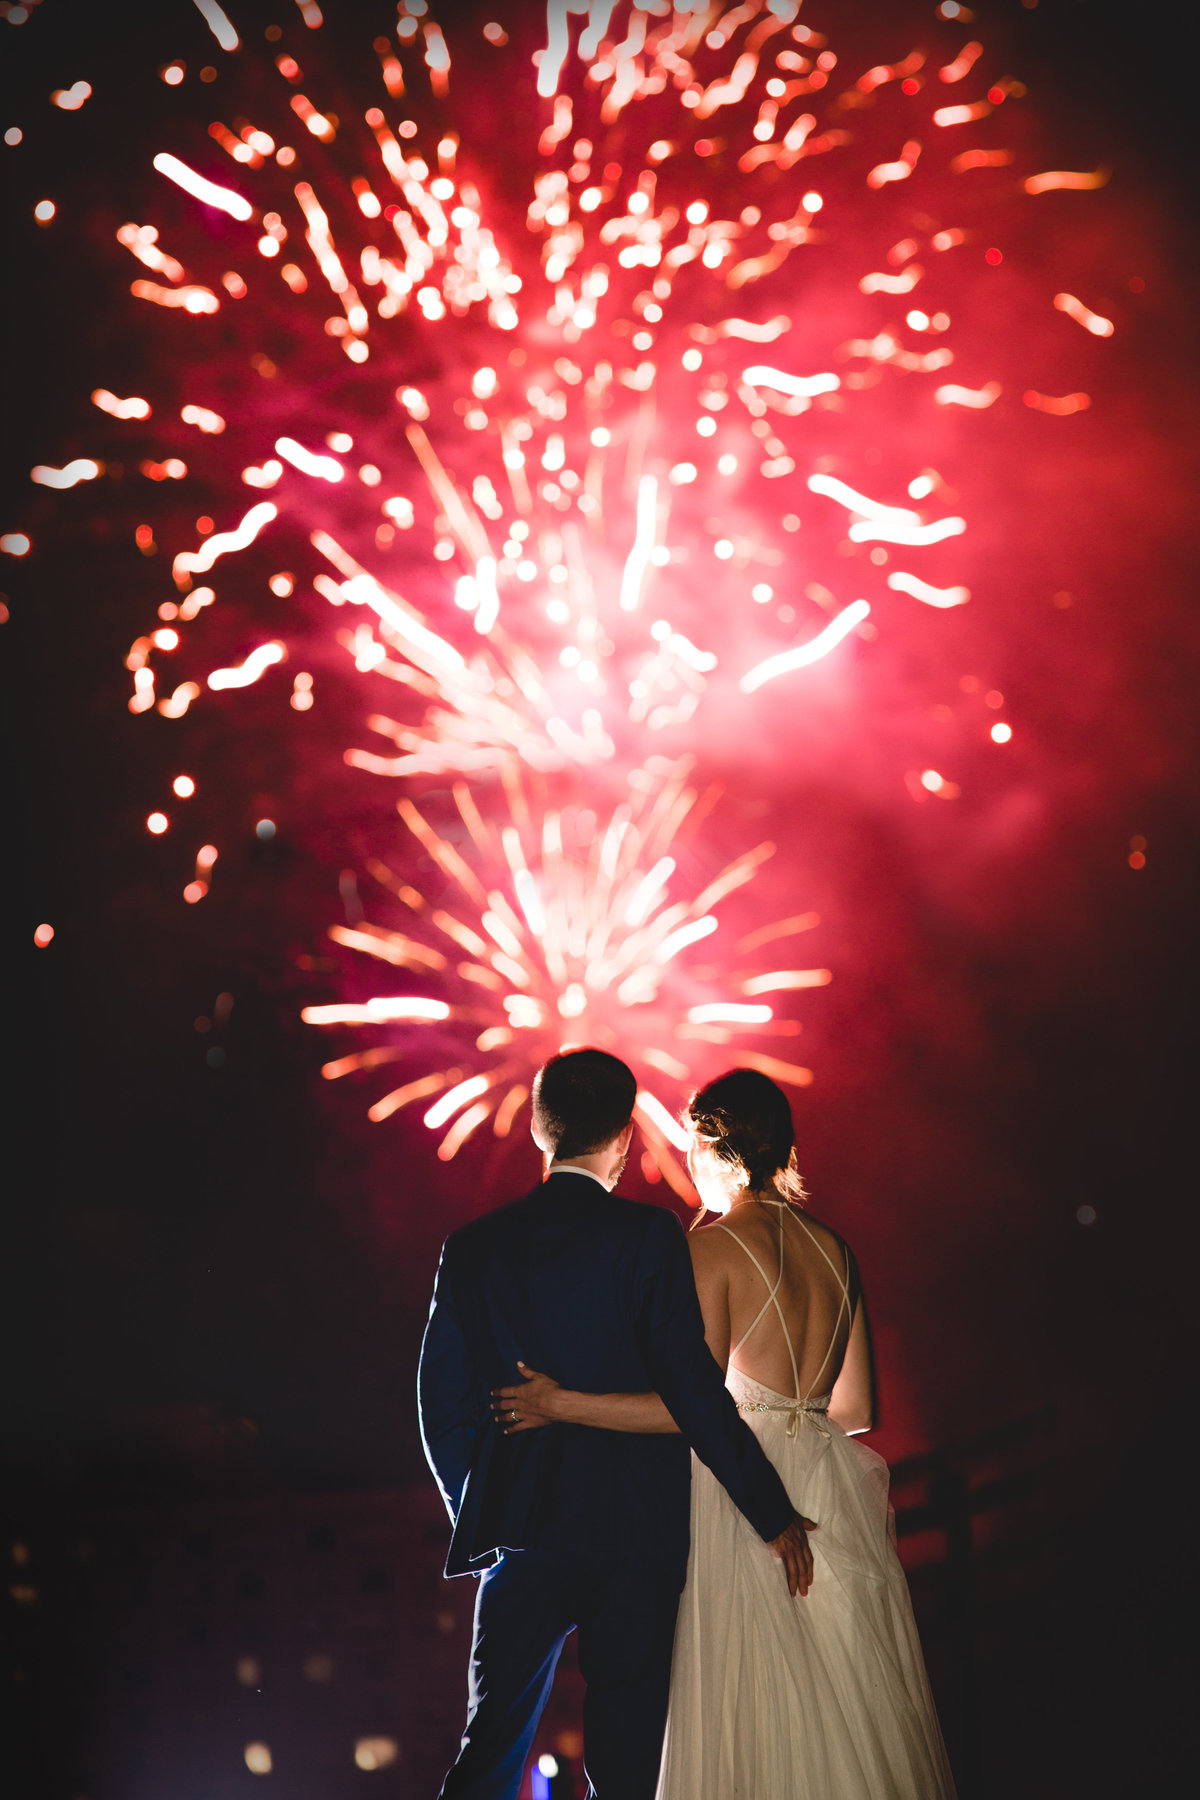 One of the top wedding photos of 2019. Taken by Adore Wedding Photography- Toledo Ohio Wedding Photographers. This wedding photo is of a bride and groom watching fireworks at the end of the night